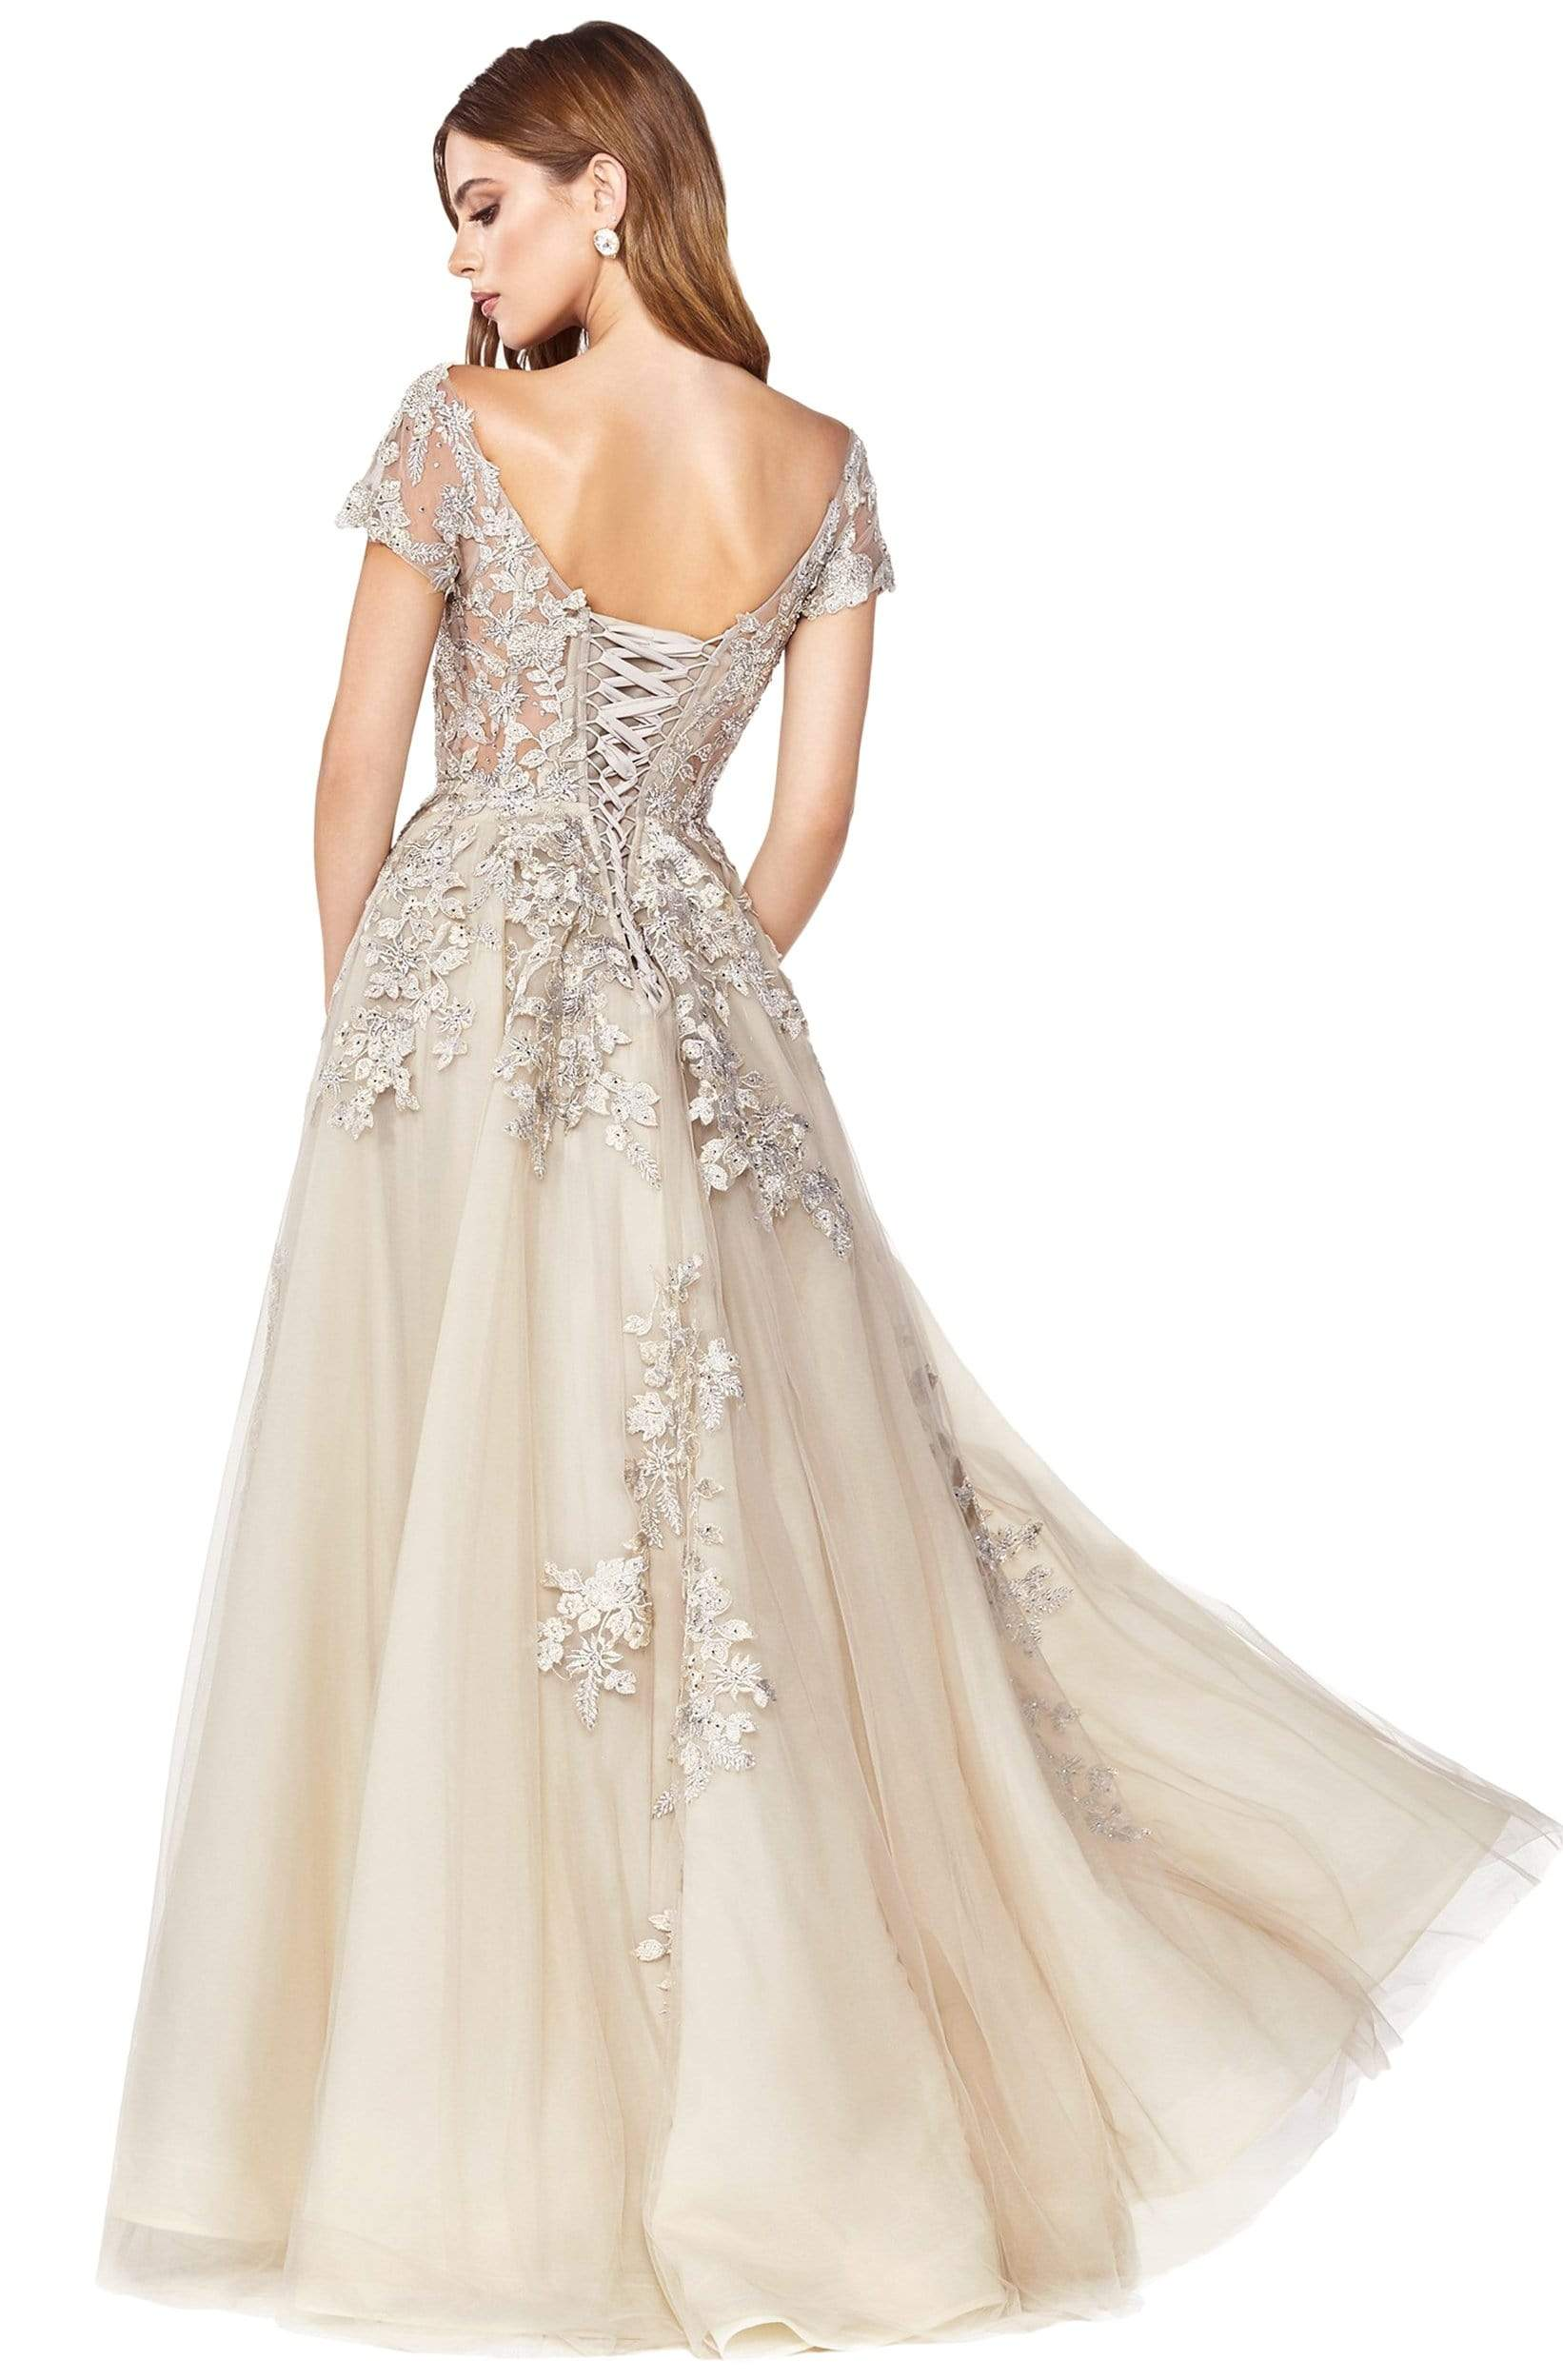 Cinderella Divine - C20 Jeweled Applique Illusion A-Line Gown In Neutral